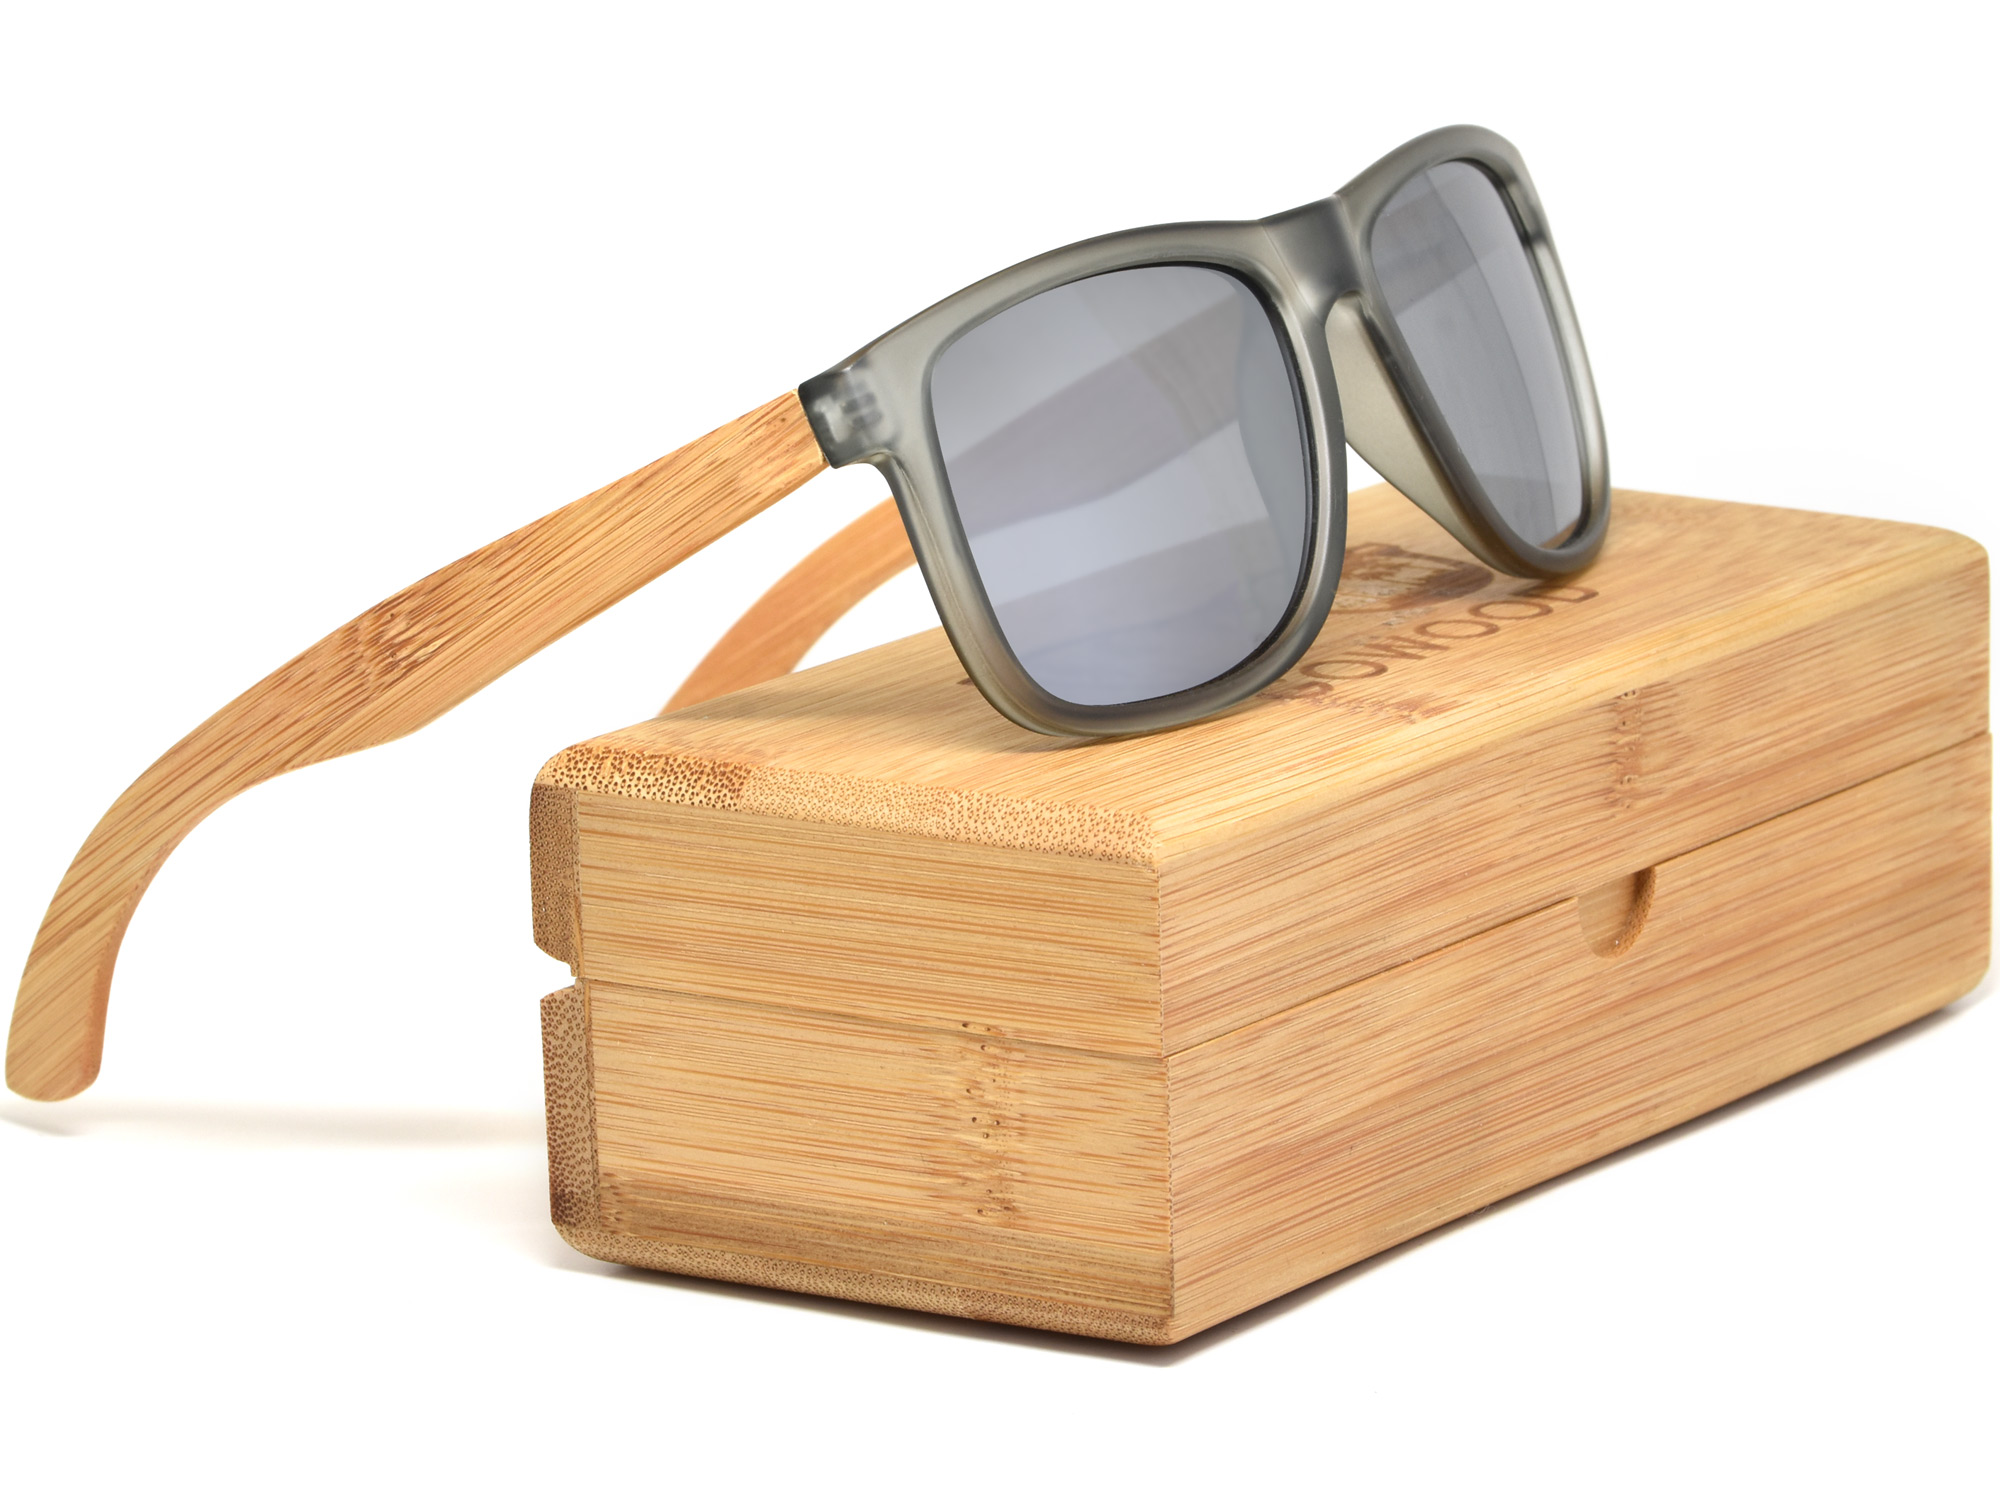 Square bamboo wood sunglasses with silver mirrored polarized lenses set